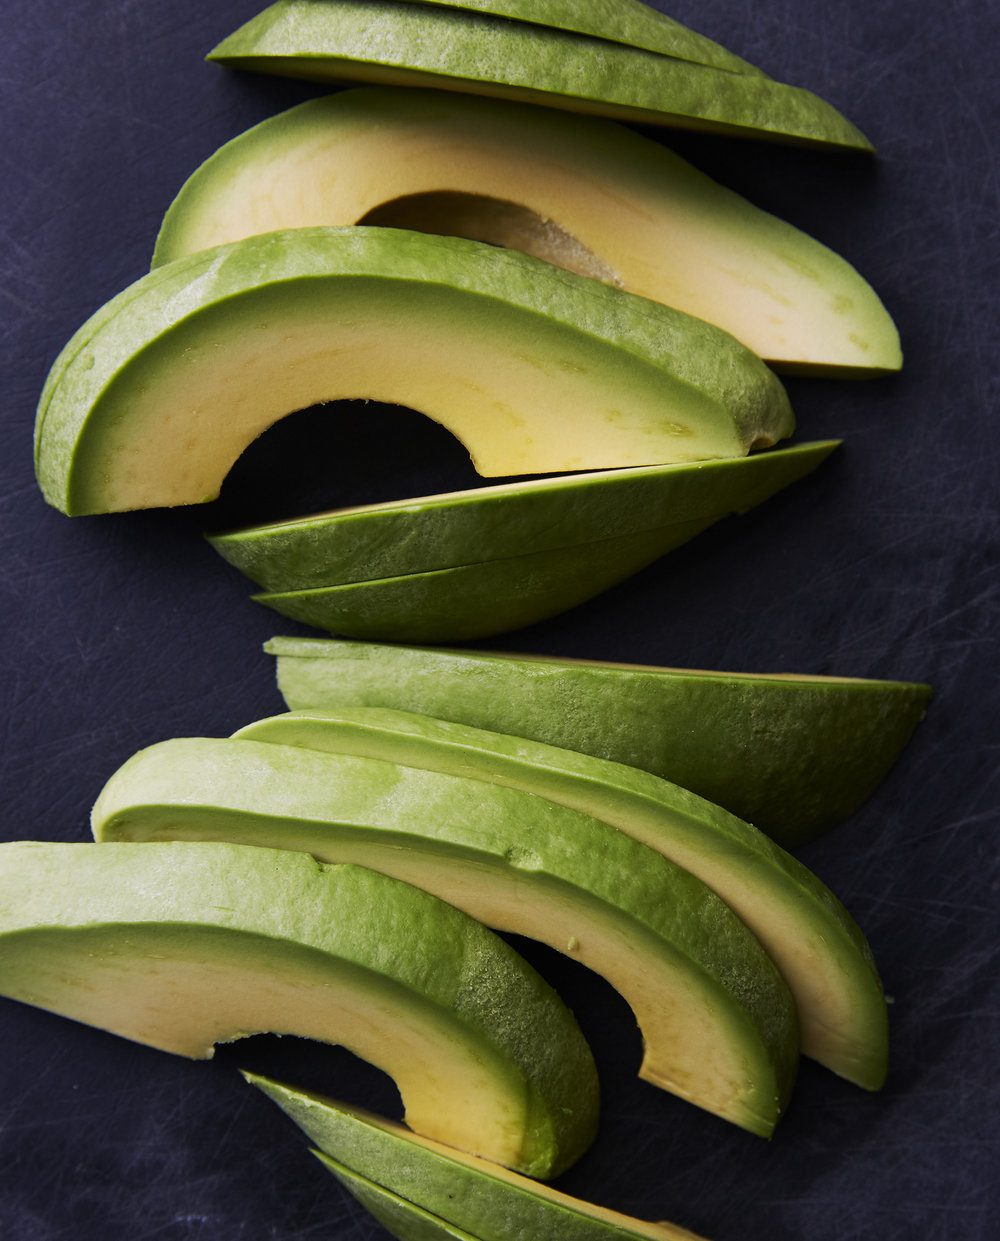 Burggraaf_Charity-Seattle_Food_Photographer-Avocado.jpg